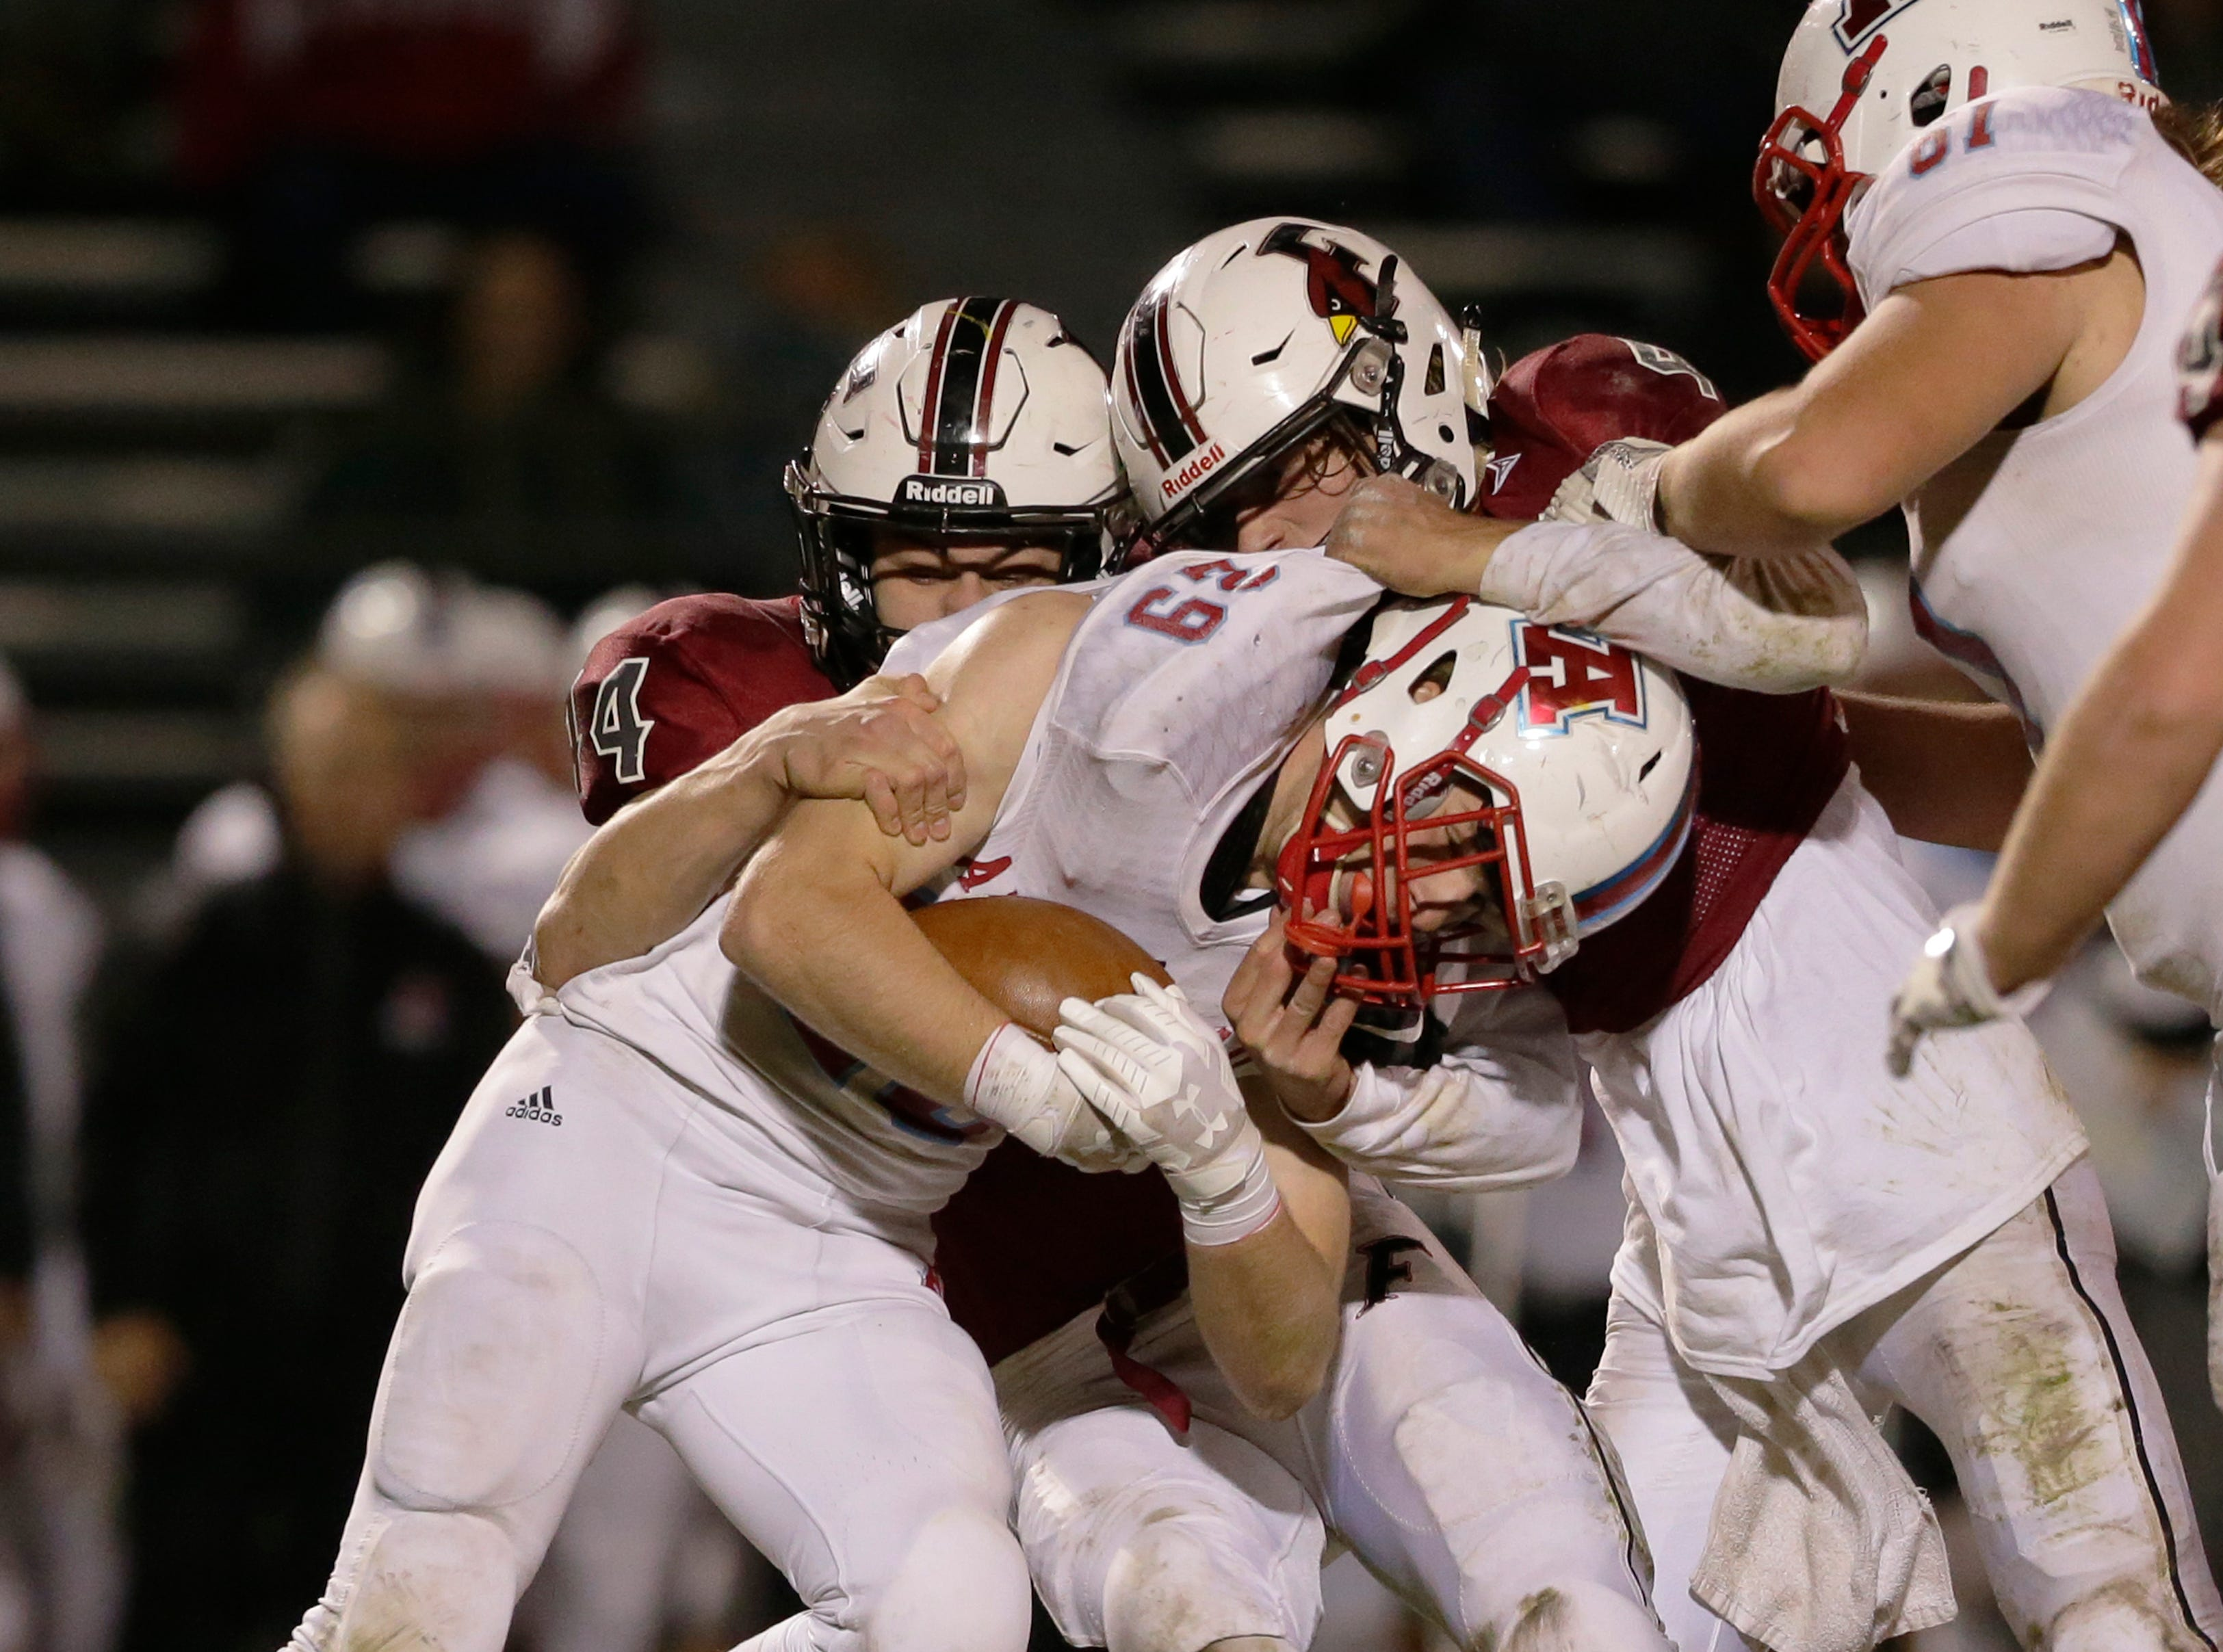 Arrowhead's Josh Nielsen is stopped by Fond du Lac's defense.  Fond du Lac Cardinals played Arrowhead Warhawks in WIAA football playoff sectionals, Friday, Oct. 26, 2018, at Fruth Field in Fond du Lac.Joe Sienkiewicz/USA Today NETWORK-Wisconsin